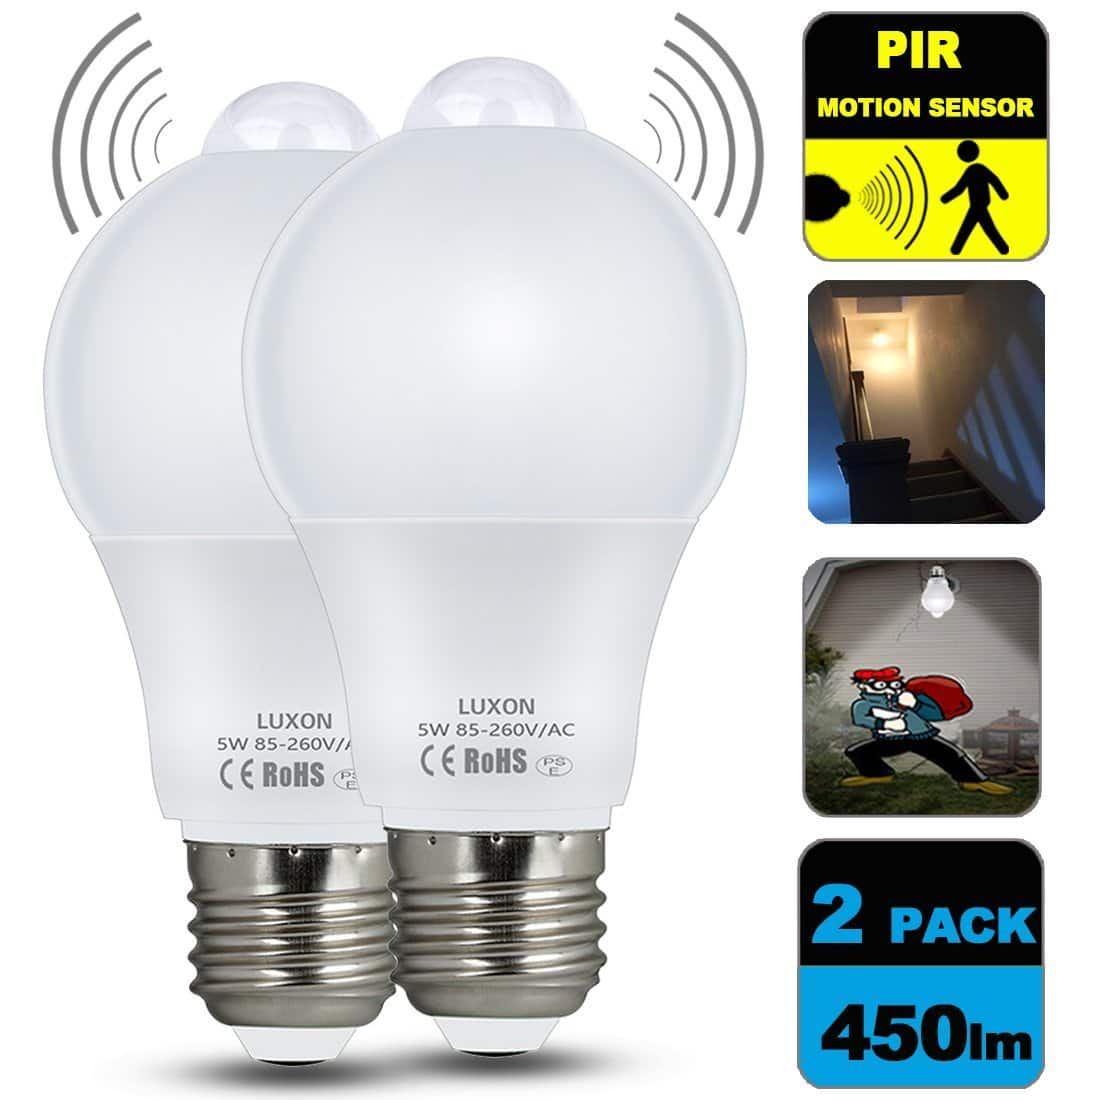 2 Pack Motion Sensor Light Bulb 5W Soft White 2700K, $11.89